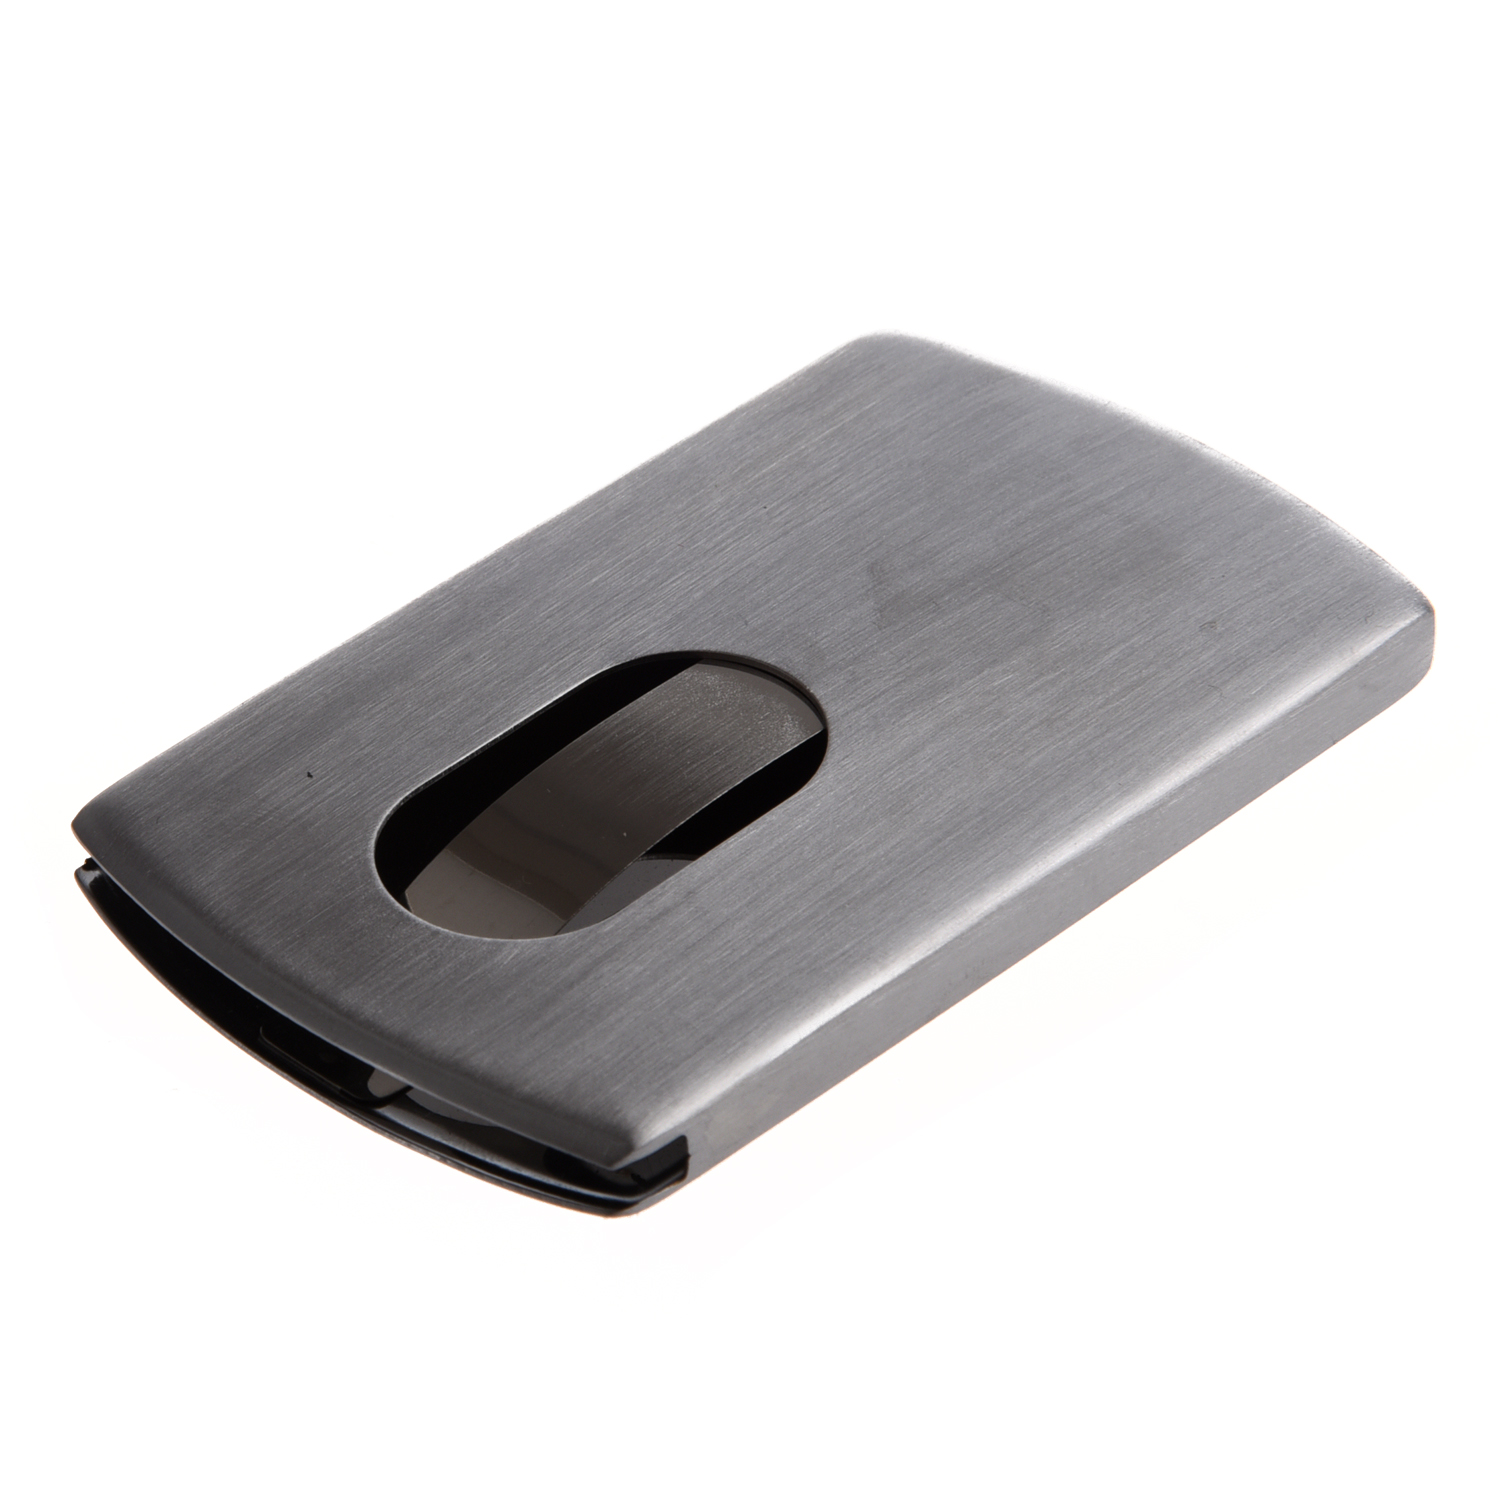 Case Box Visit / Credit Card Holder In Stainless Steel